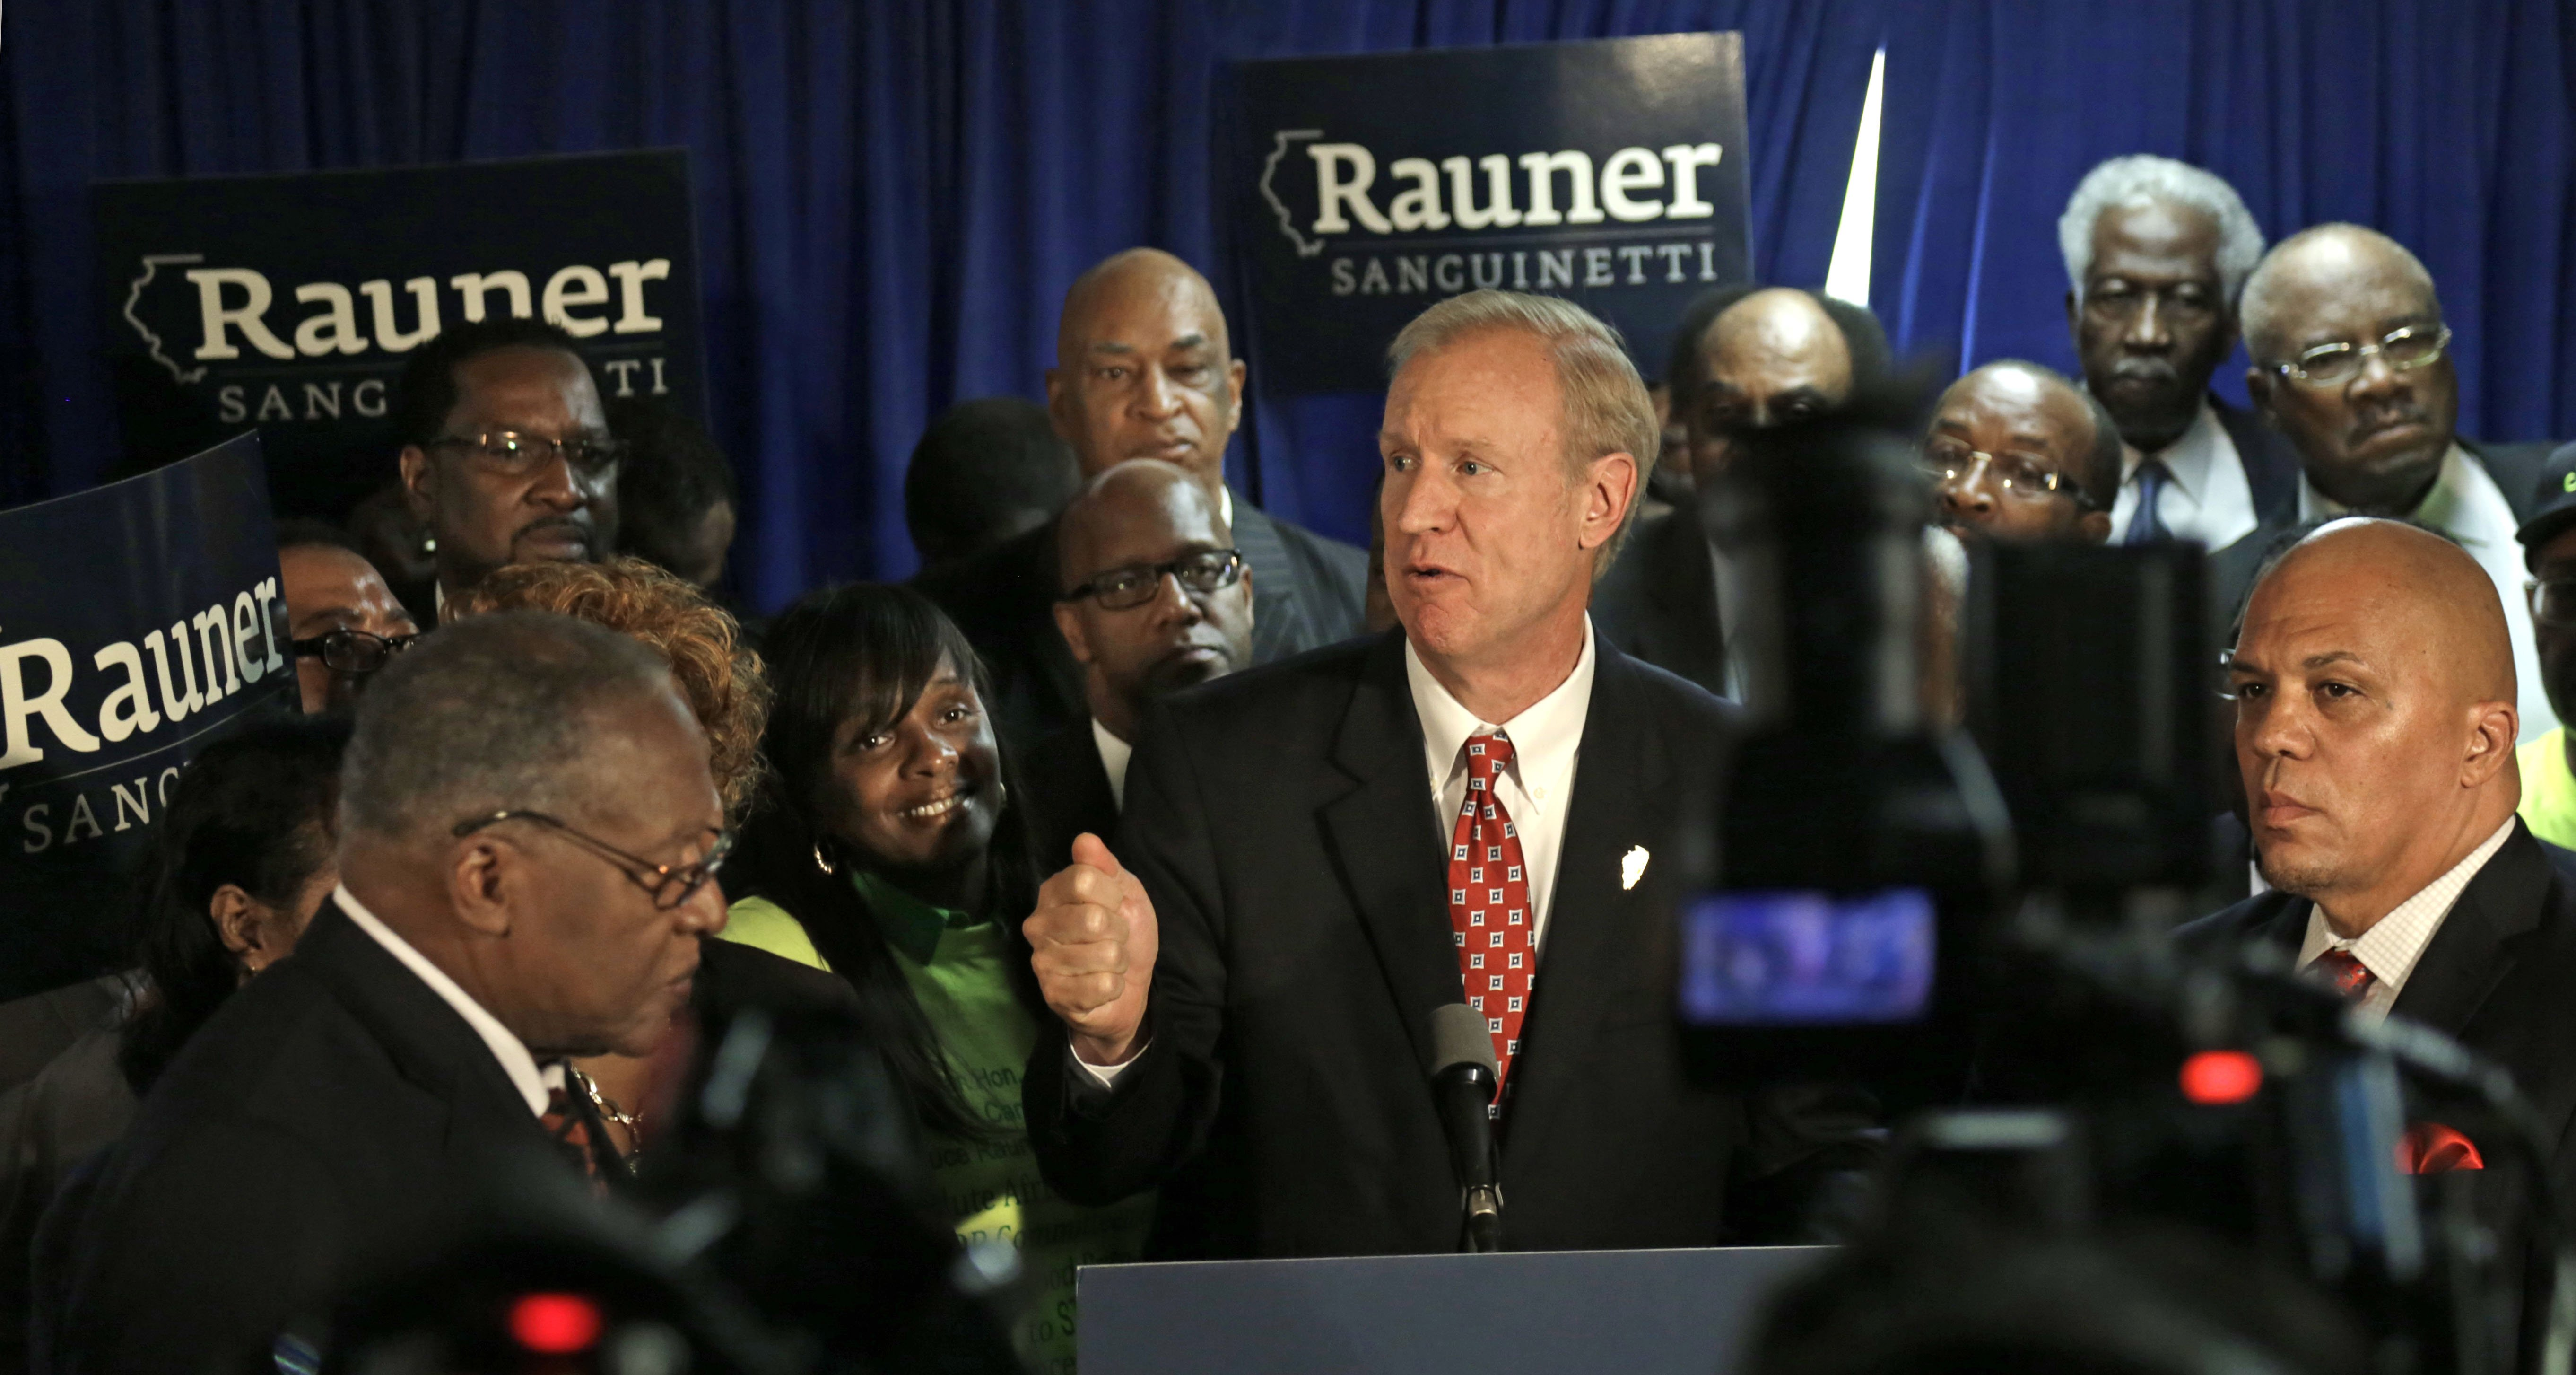 Illinois Republican gubernatorial candidate Bruce Rauner speaks at an event where he was endorsed by a group of African American ministers on Sept. 22, 2014, in Chicago.